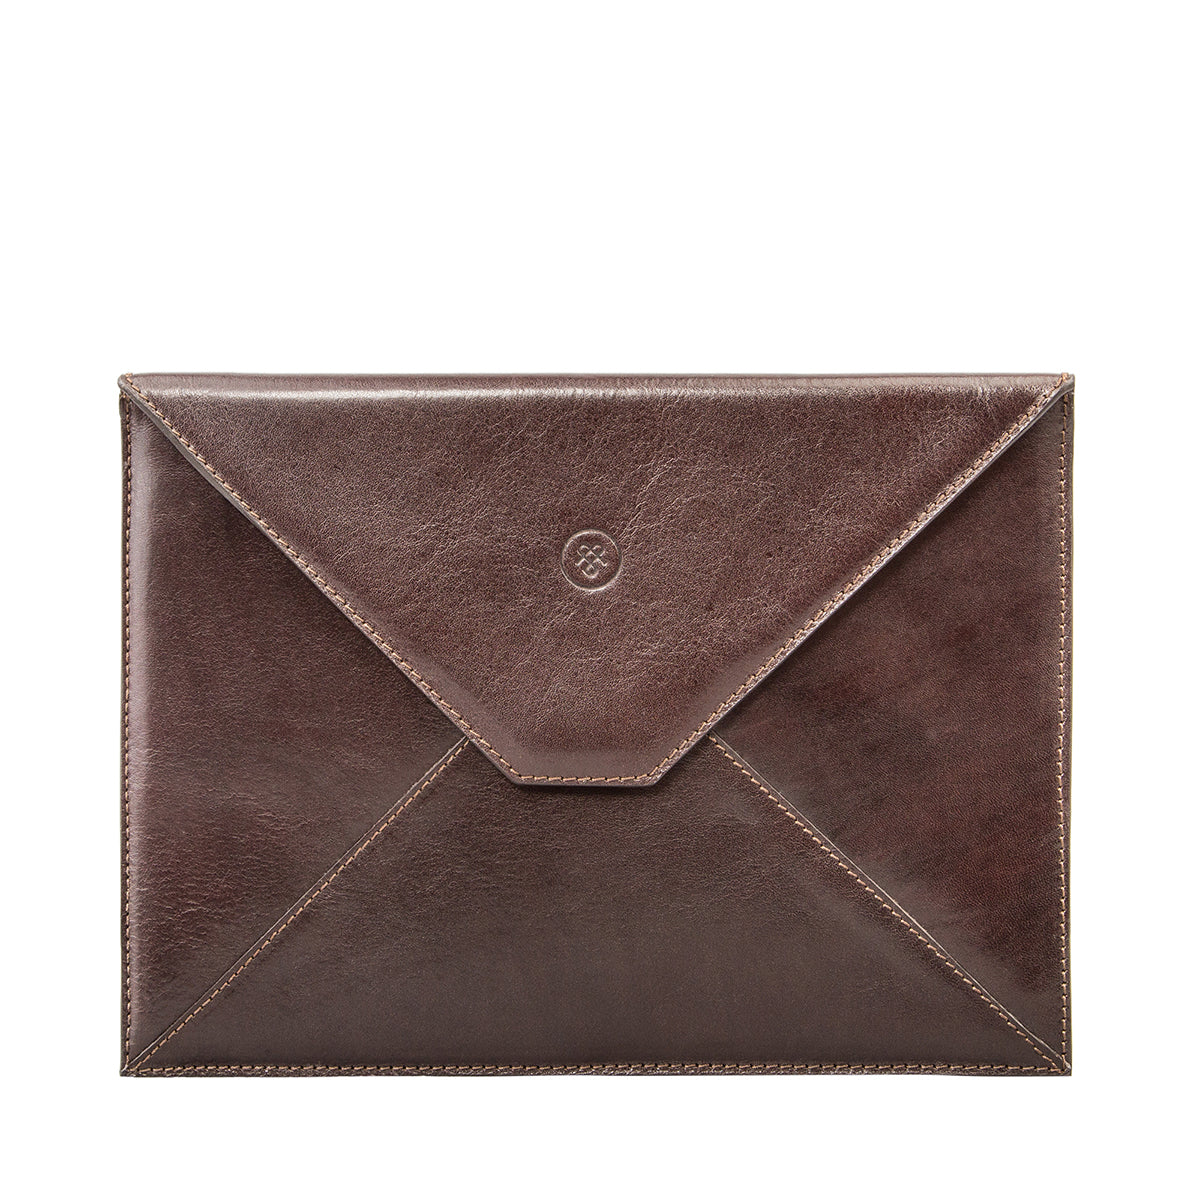 Image 1 of the 'Pico' Dark Chocolate Veg-Tanned Leather Mini Tablet Case